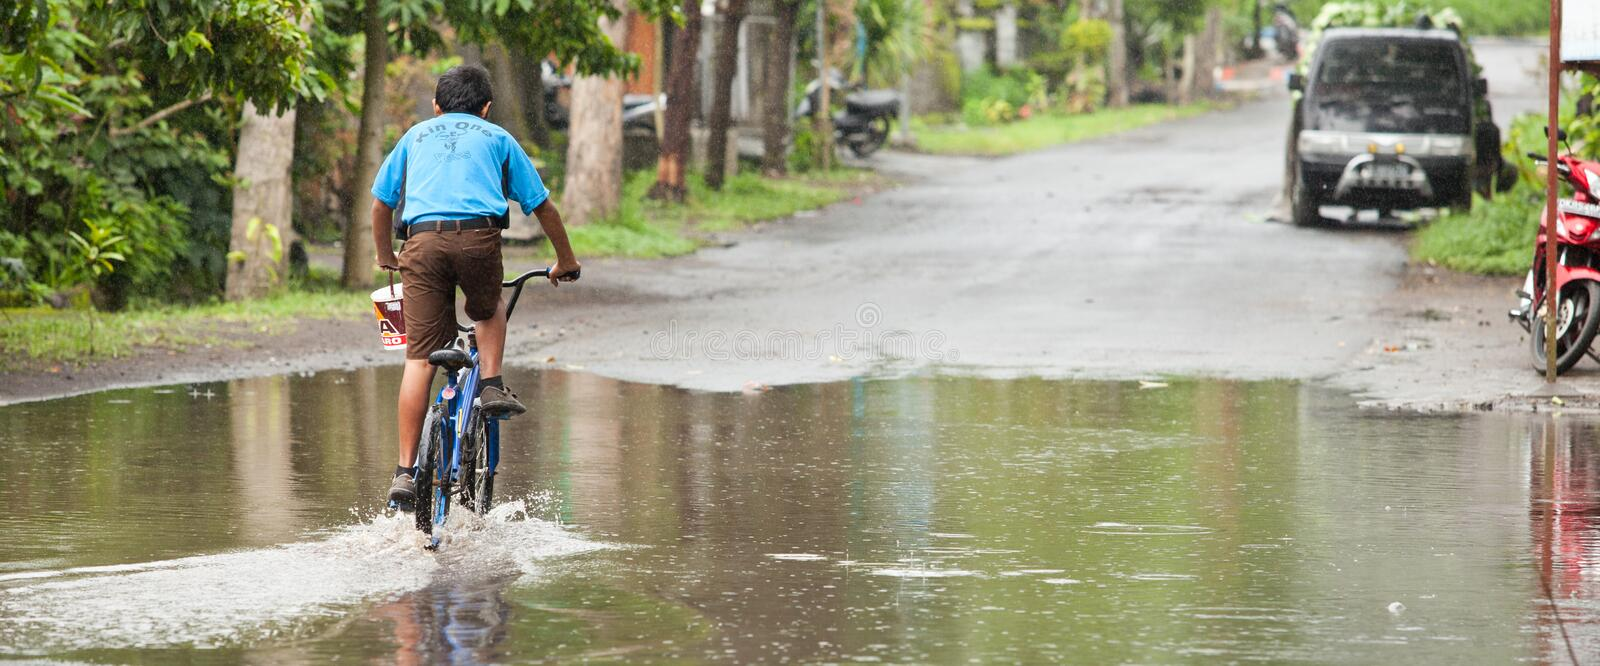 Floods. LAKE BATUR, BALI - JANUARY 21. Kid cycling through flooded street after downpour on Lake Batur on January 21, 2012 in Bali, Indonesia. Weather patterns stock images